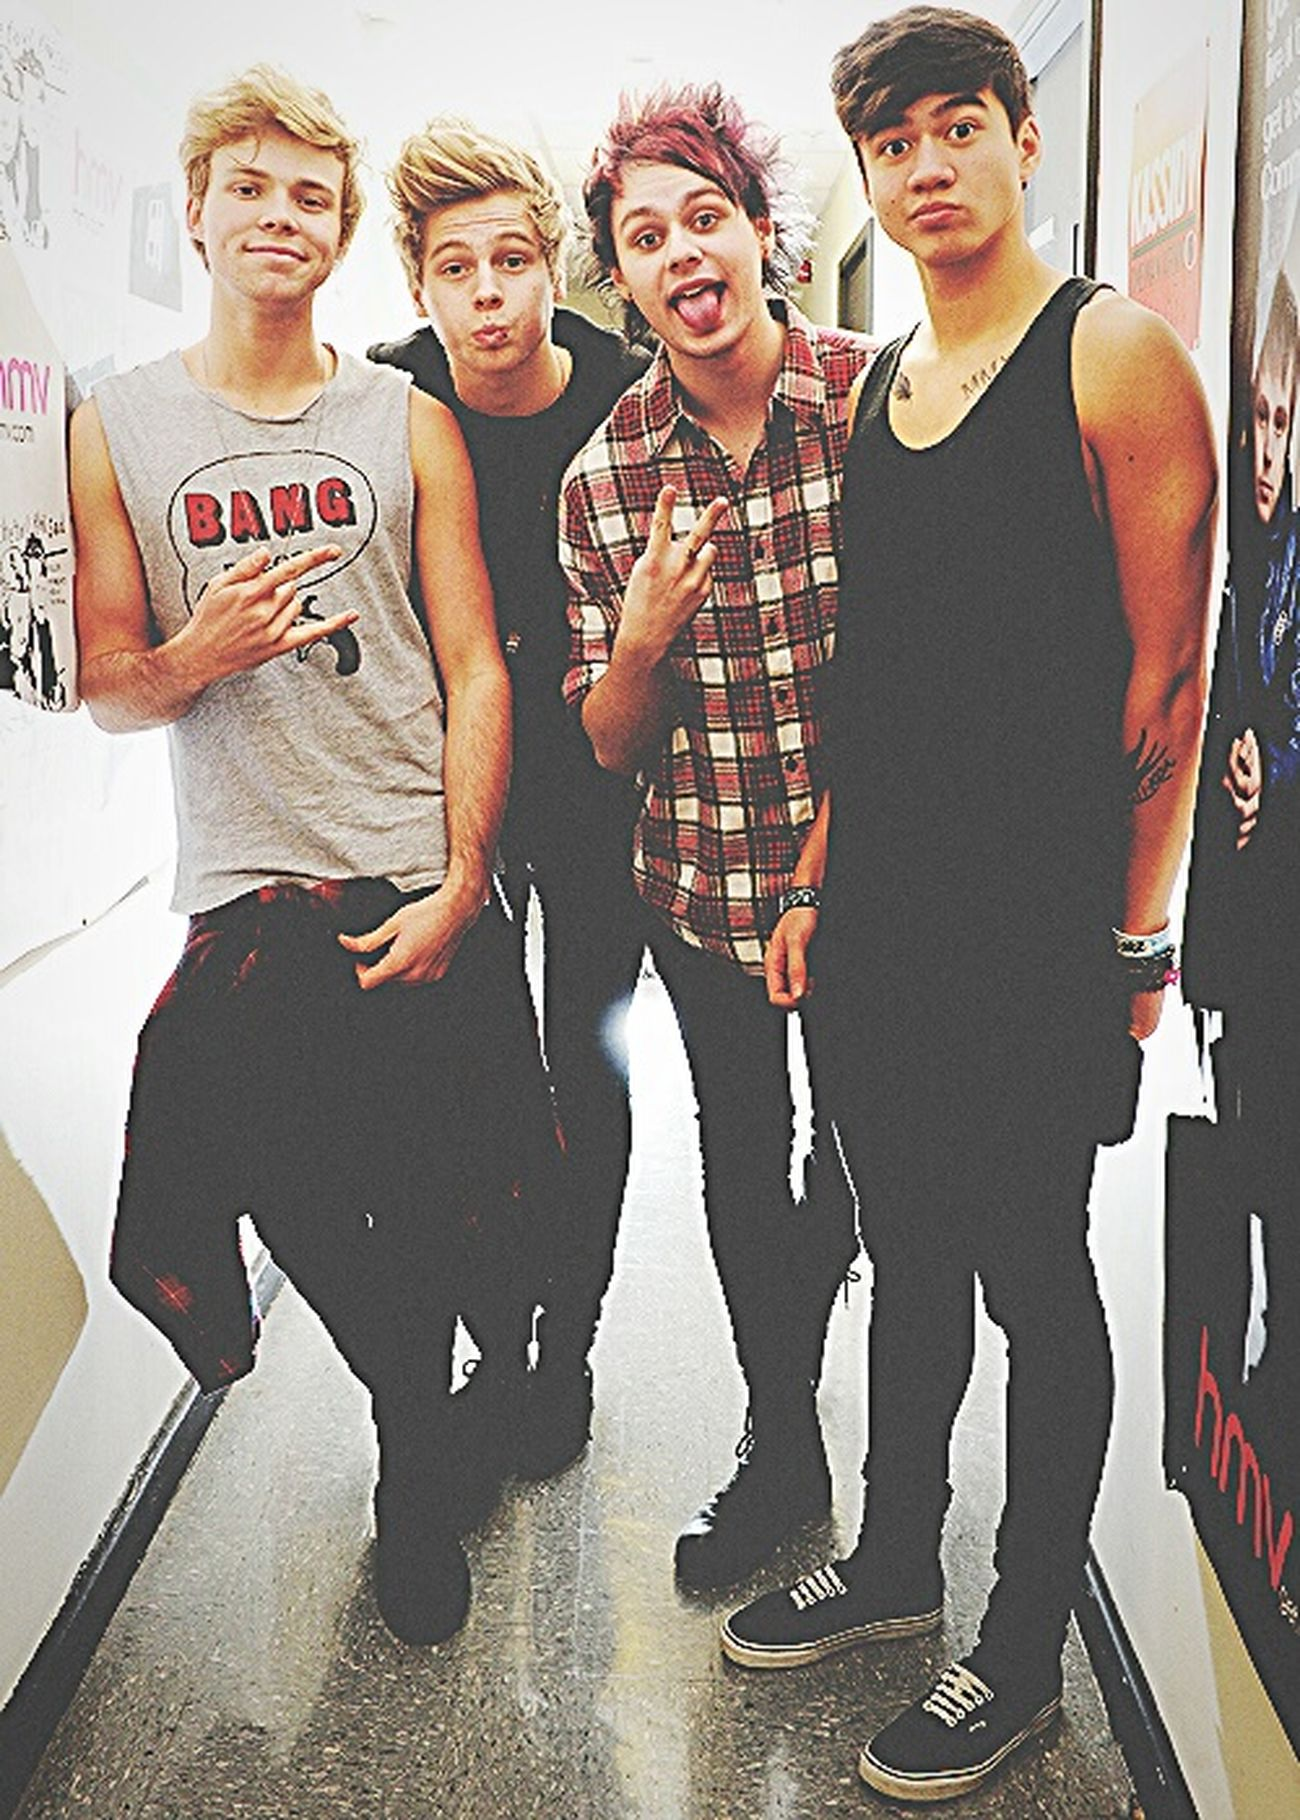 • M Y I D O L S • 5SOS Idols Goodvibes✌️ Followme Vintage Nice Pic Cute Awesome Omg Like (: